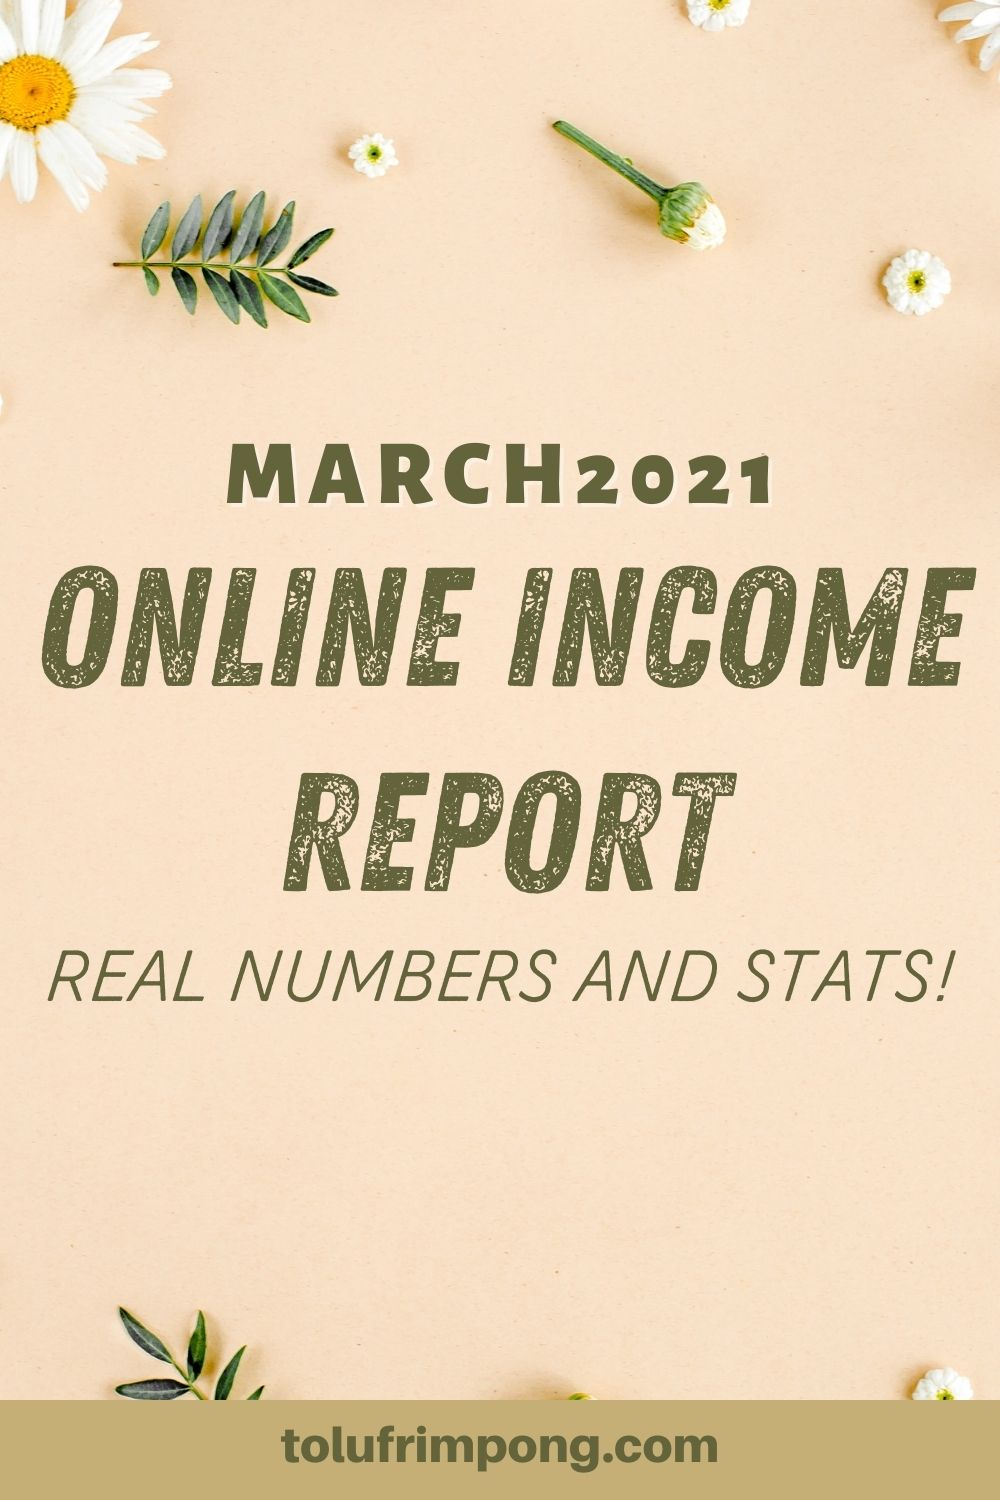 March 2021 Online Income Report Tolu Frimpong